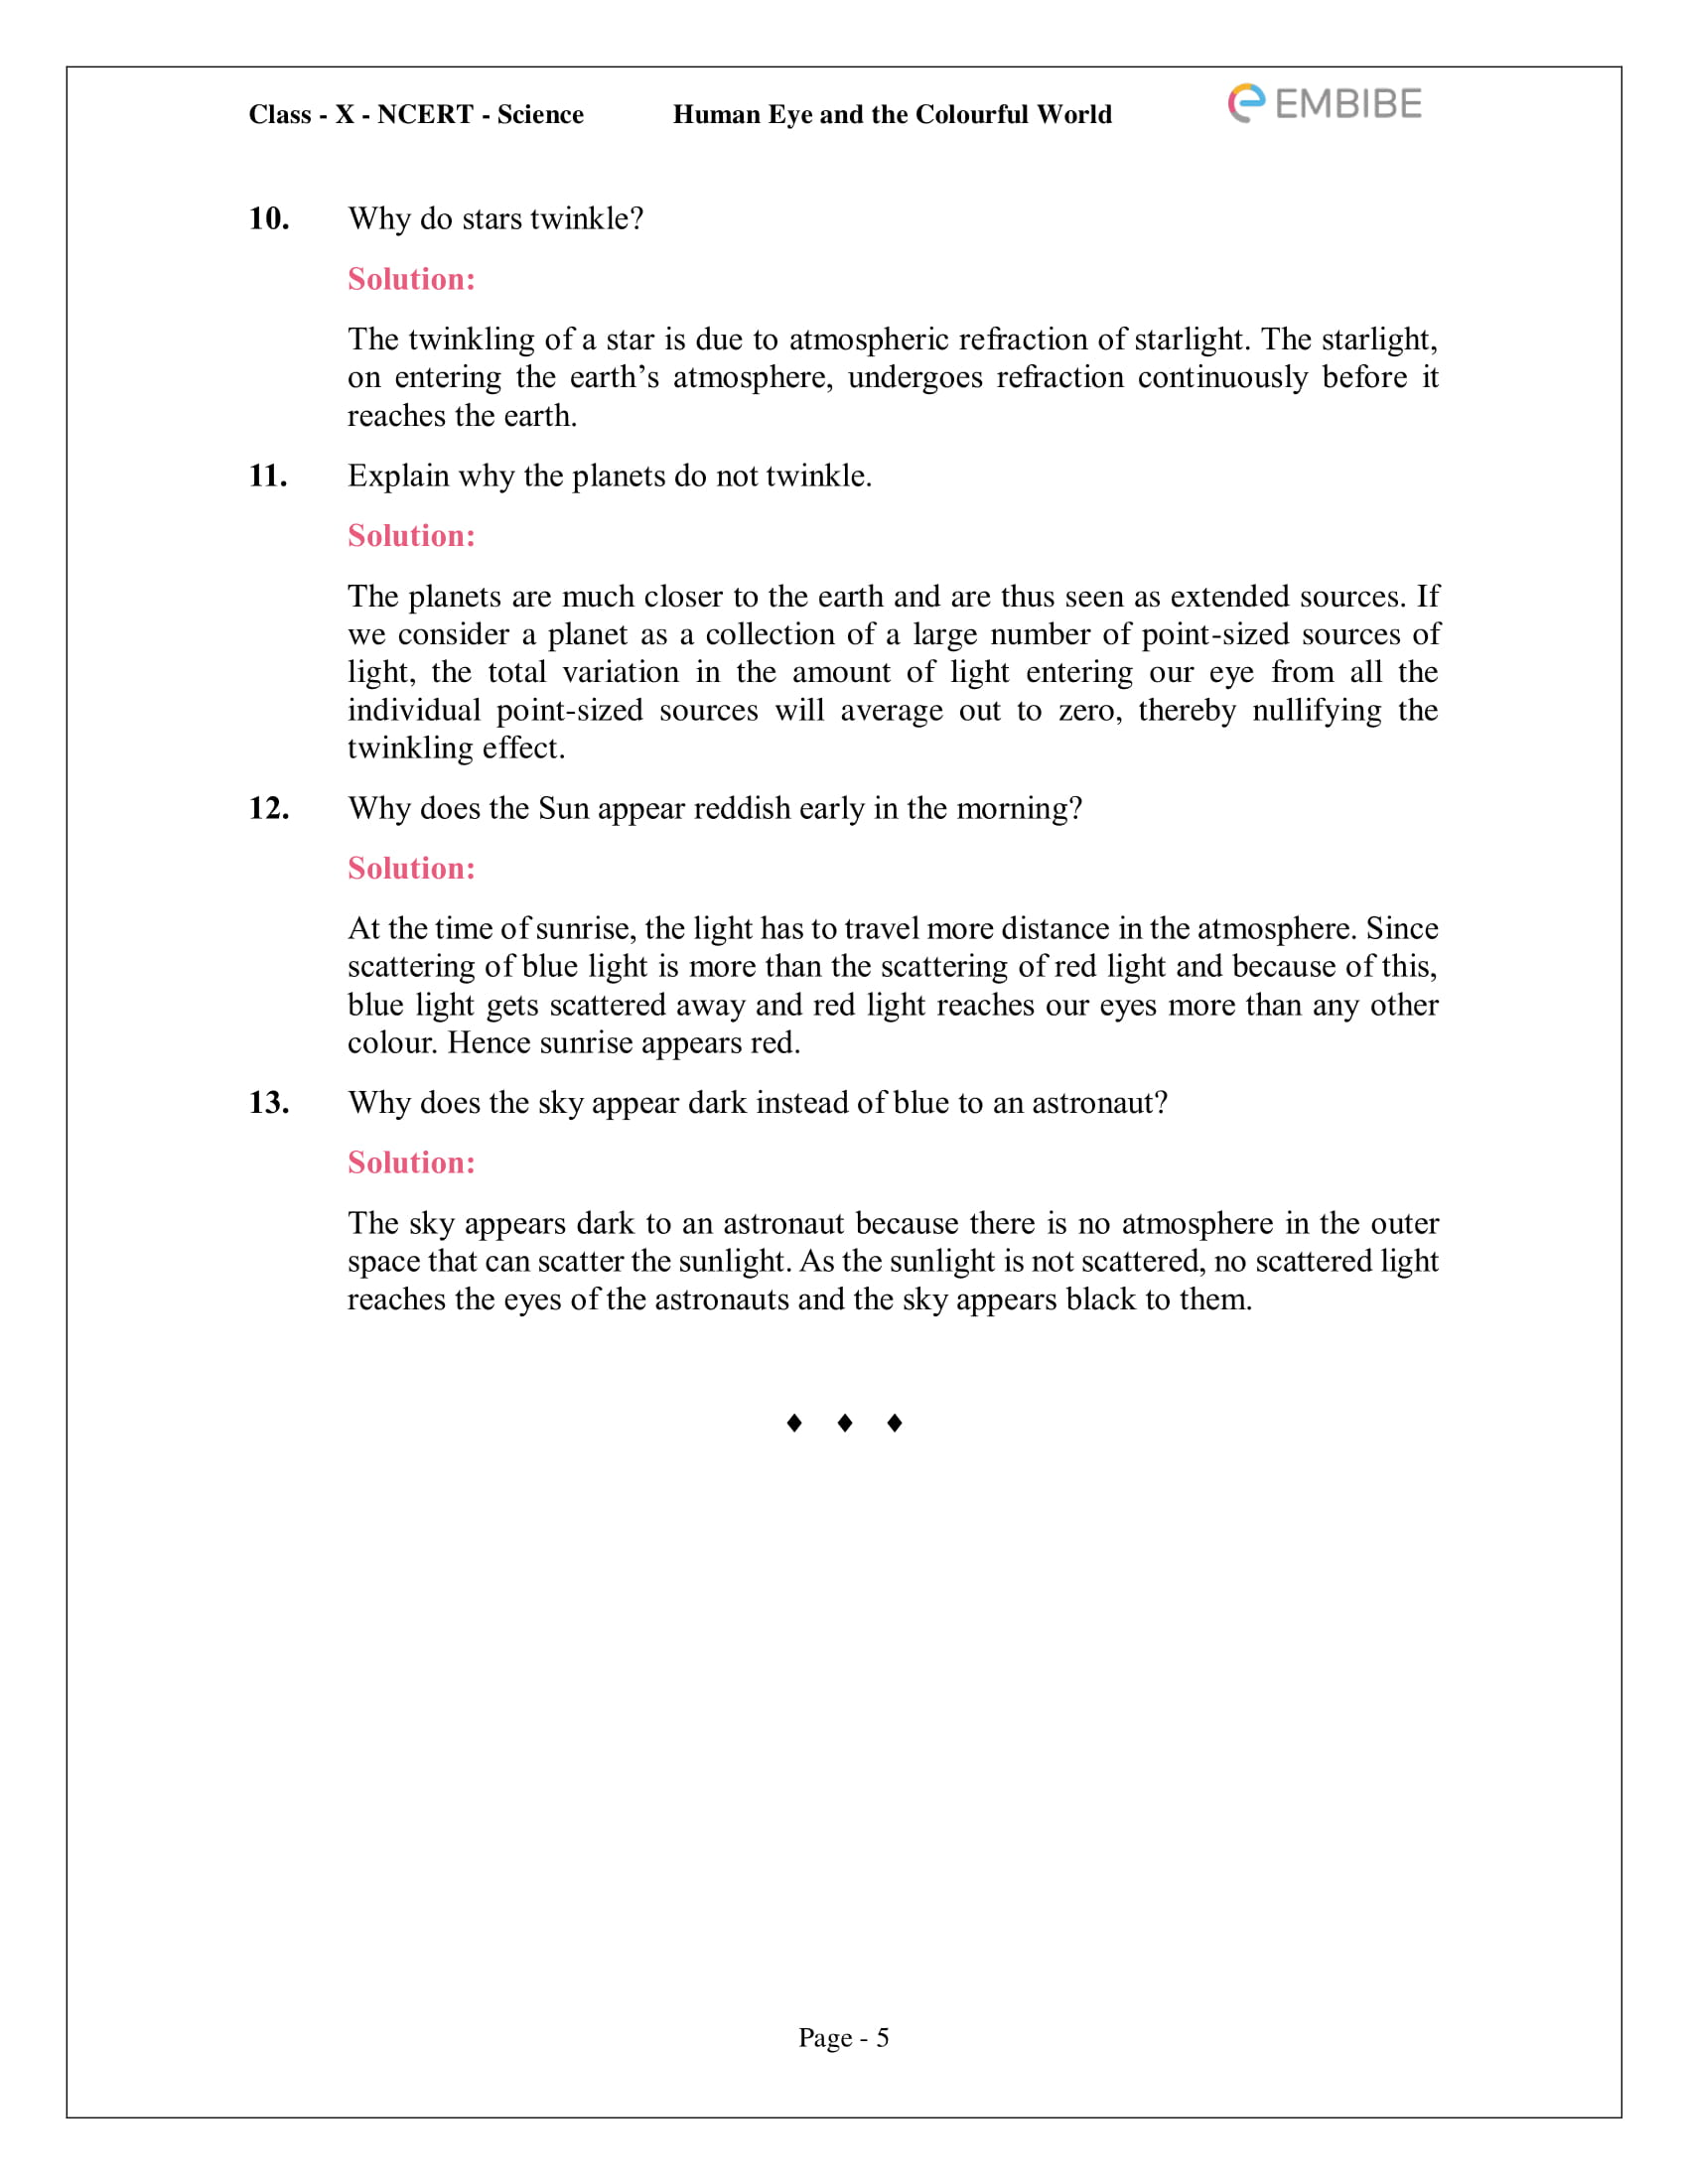 CBSE NCERT Solutions for Class 10 Science Chapter 11 - Human Eye And Colourful World - 5